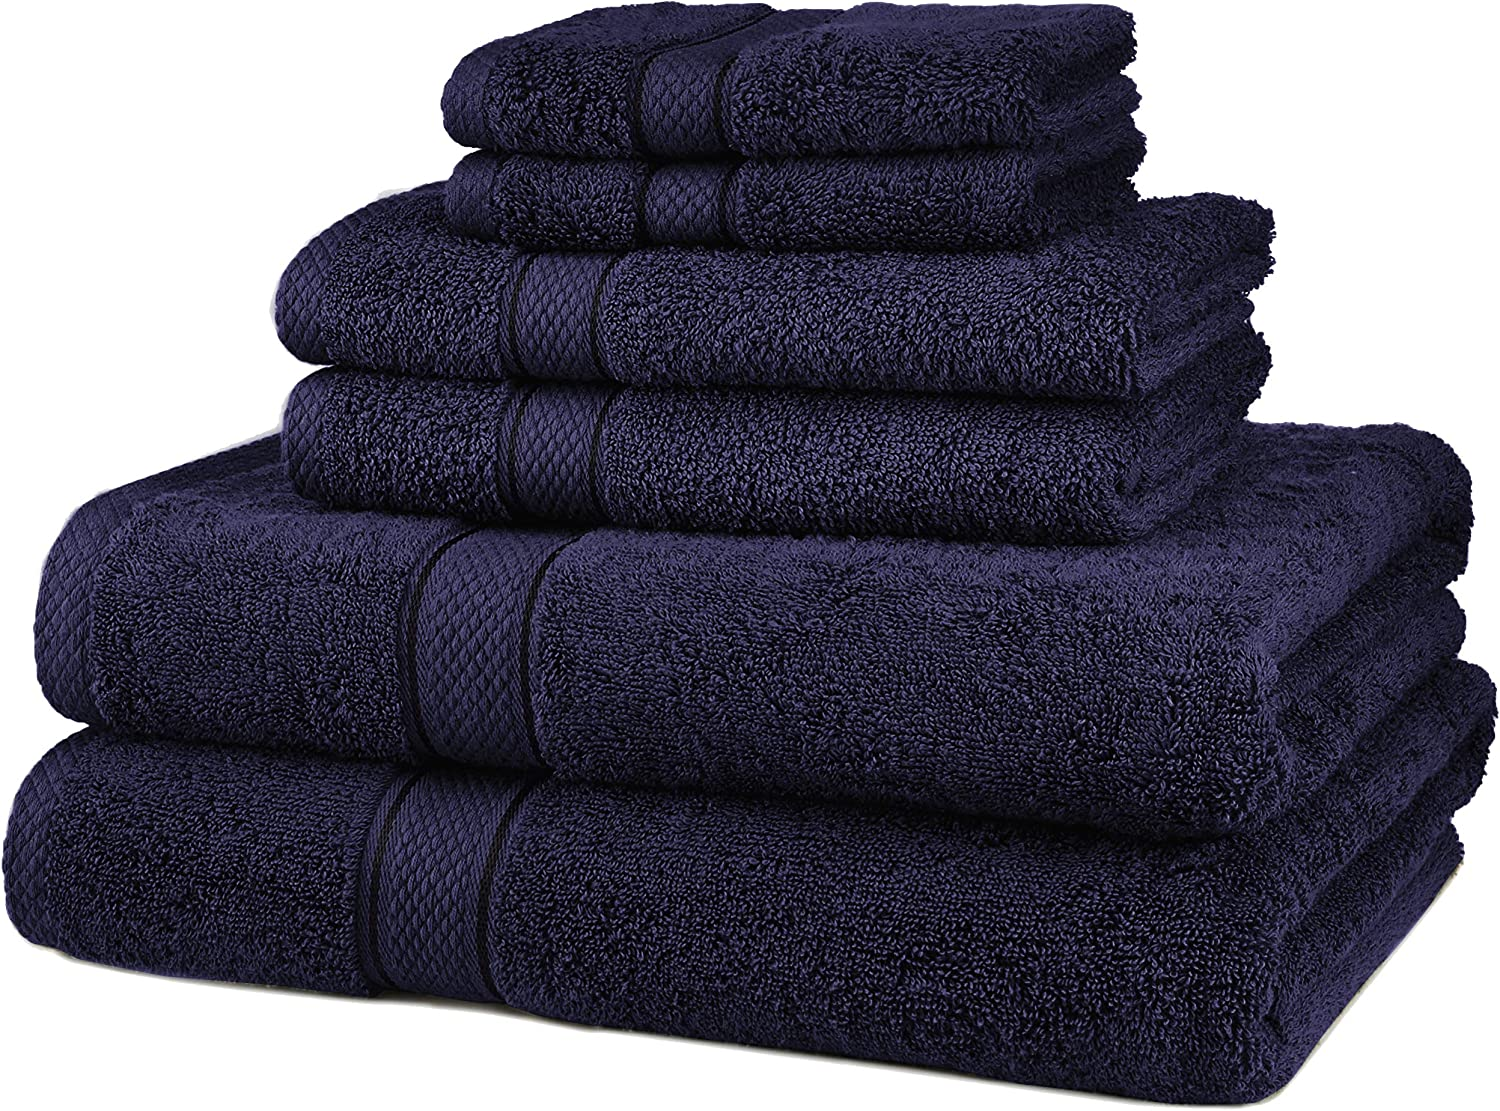 Pinzon 6 Piece Blended Egyptian Cotton Bath Towel Set - Navy: Home & Kitchen